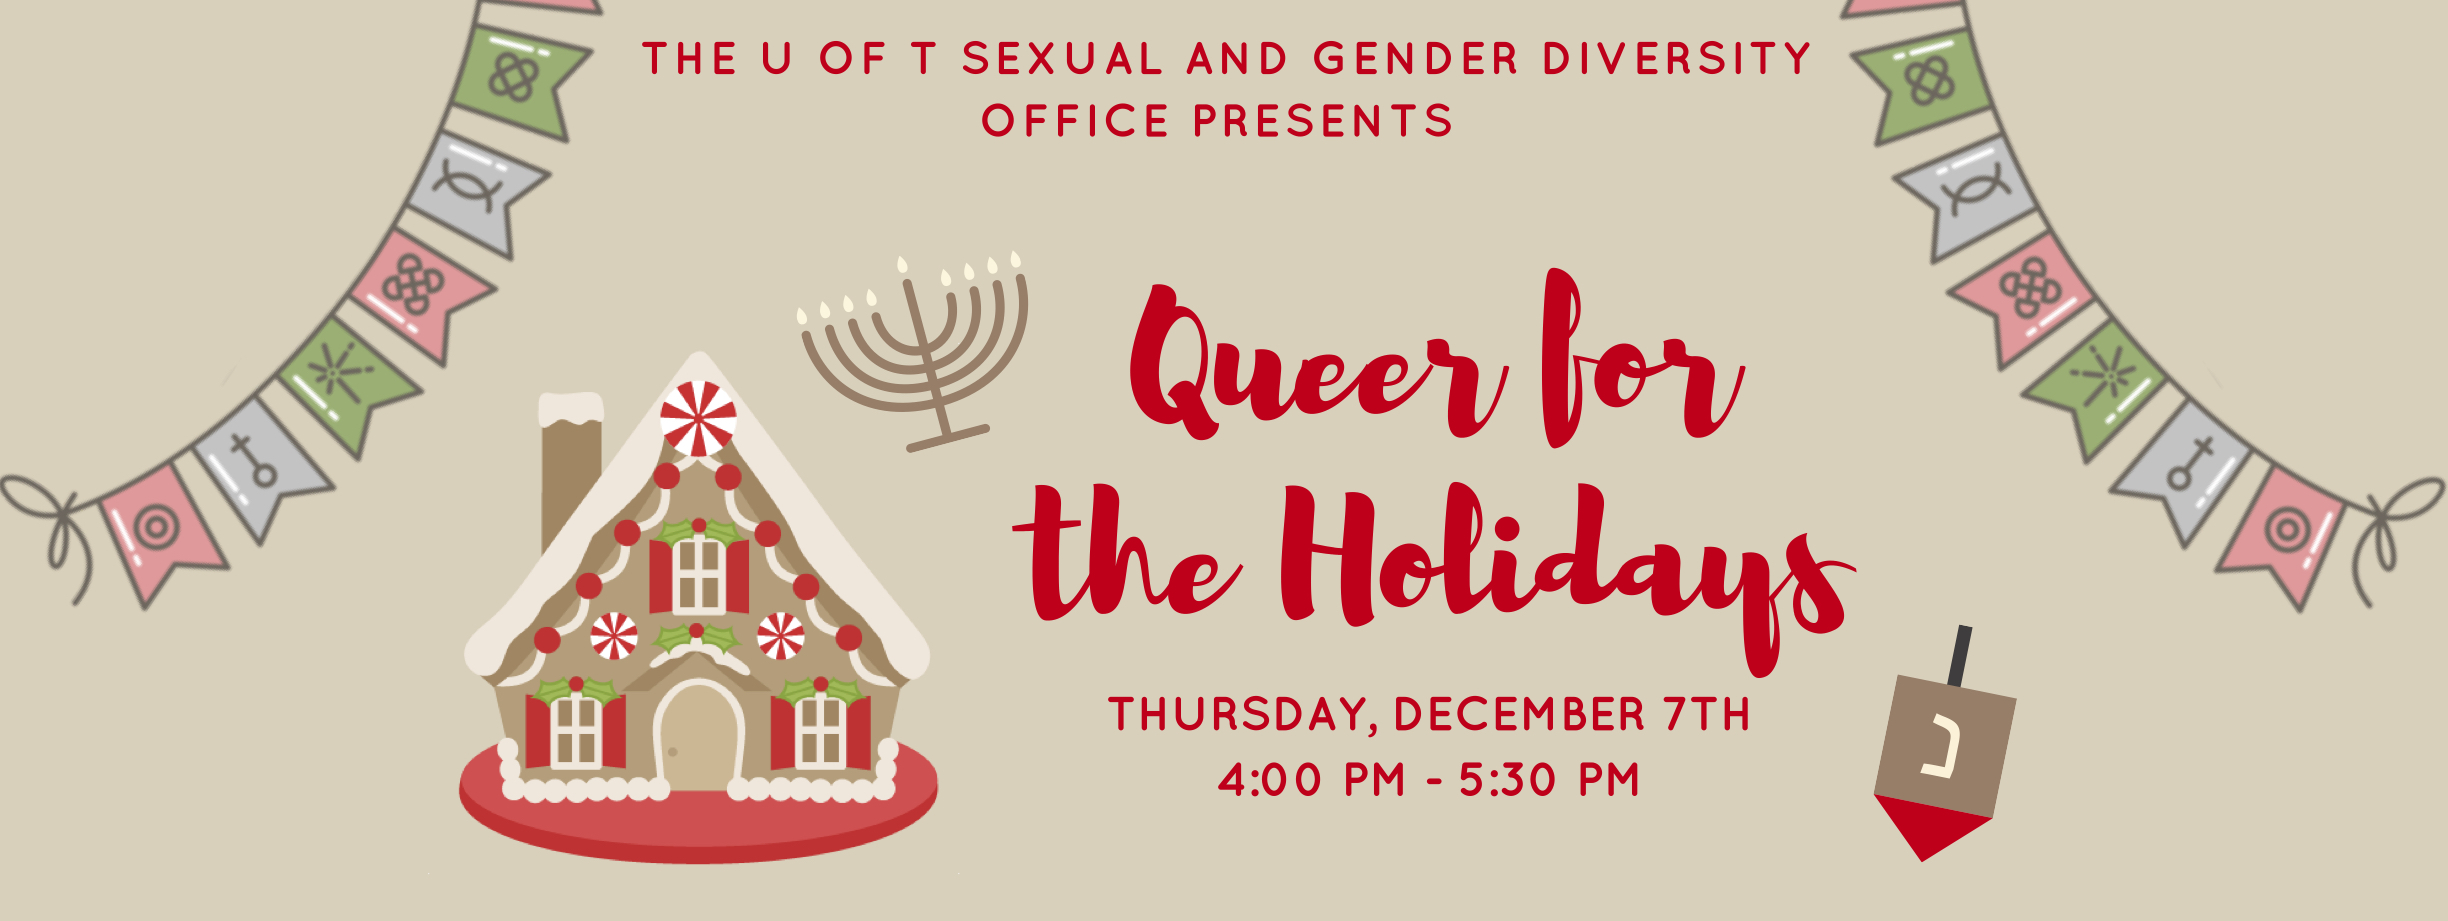 Queer for the holidays sexual gender diversity office please note the time of this event has be changed to 400 pm 530 pm the location remains the same room 421 21 sussex avenue kristyandbryce Images